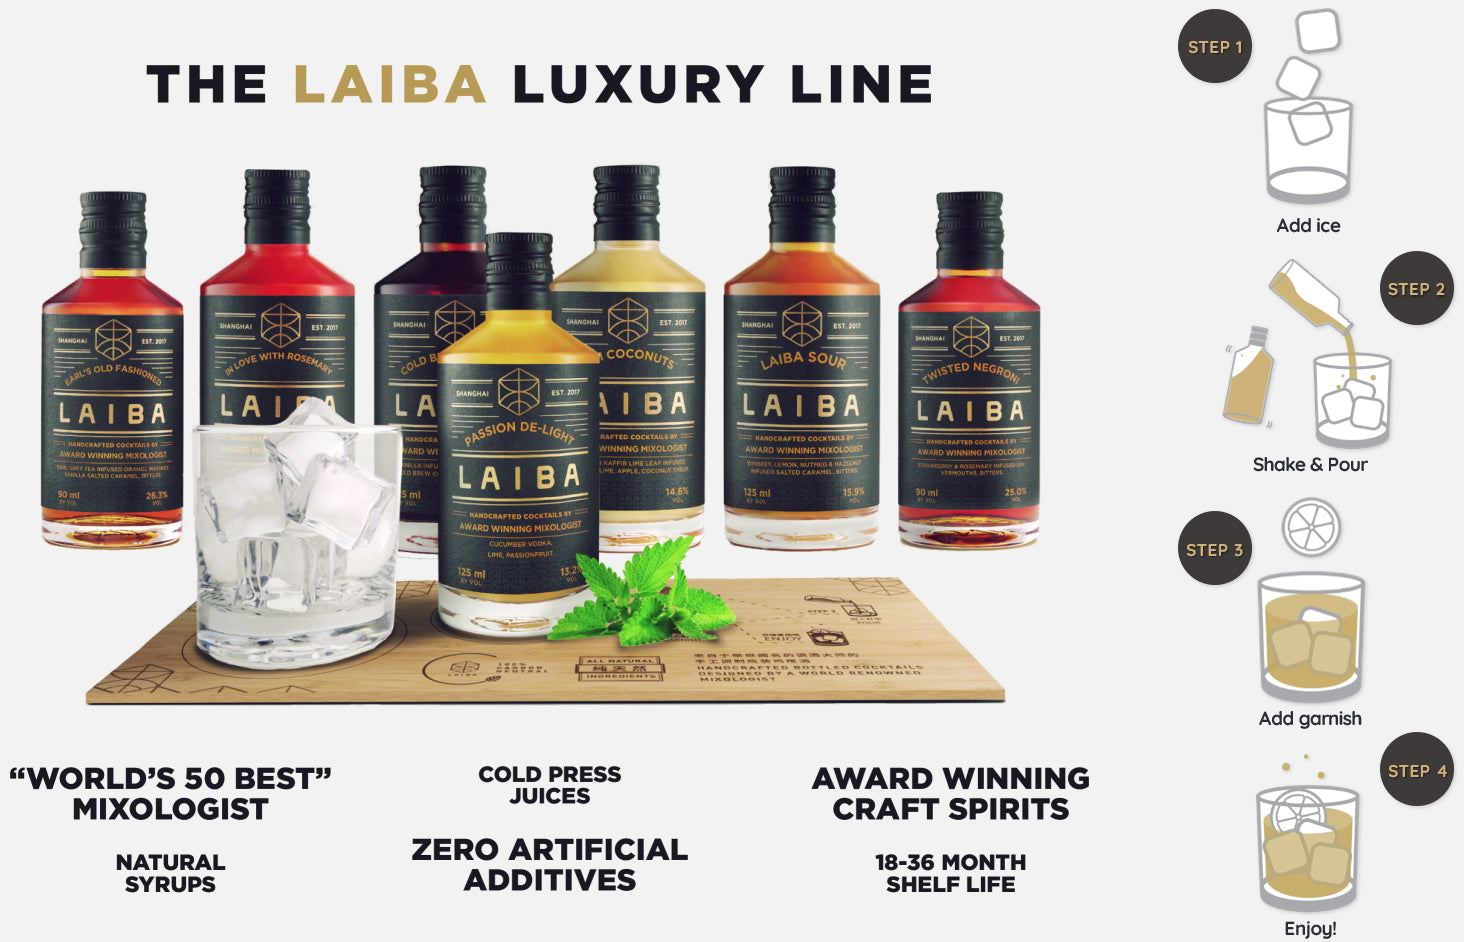 The LAIBA Luxury Line - Serving cocktails at home has never been easier! - LAIBA Singapore